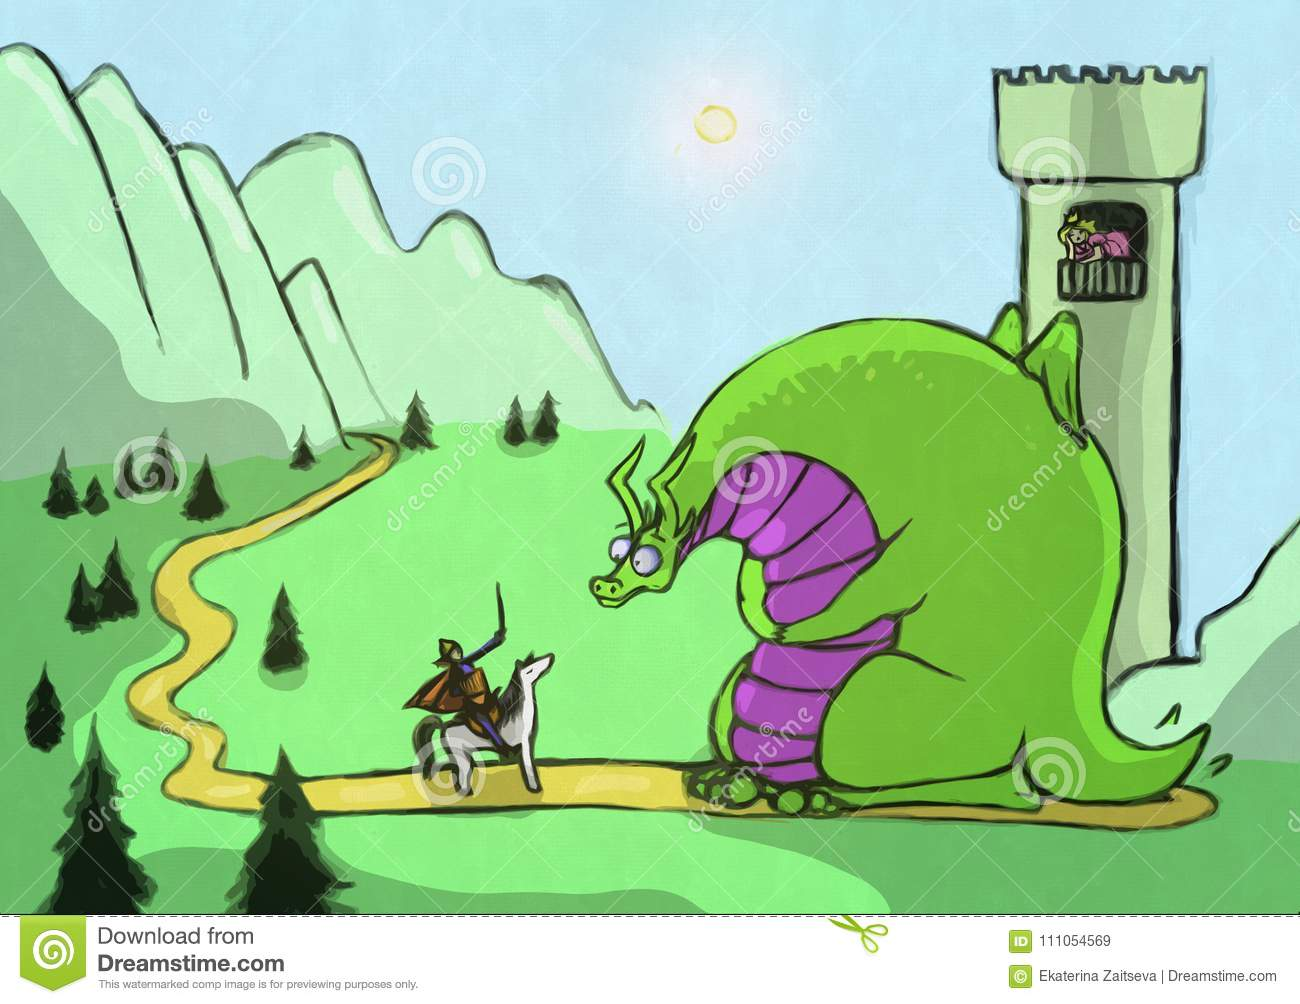 The Fairytale Story Illustration With The Green Dragon And